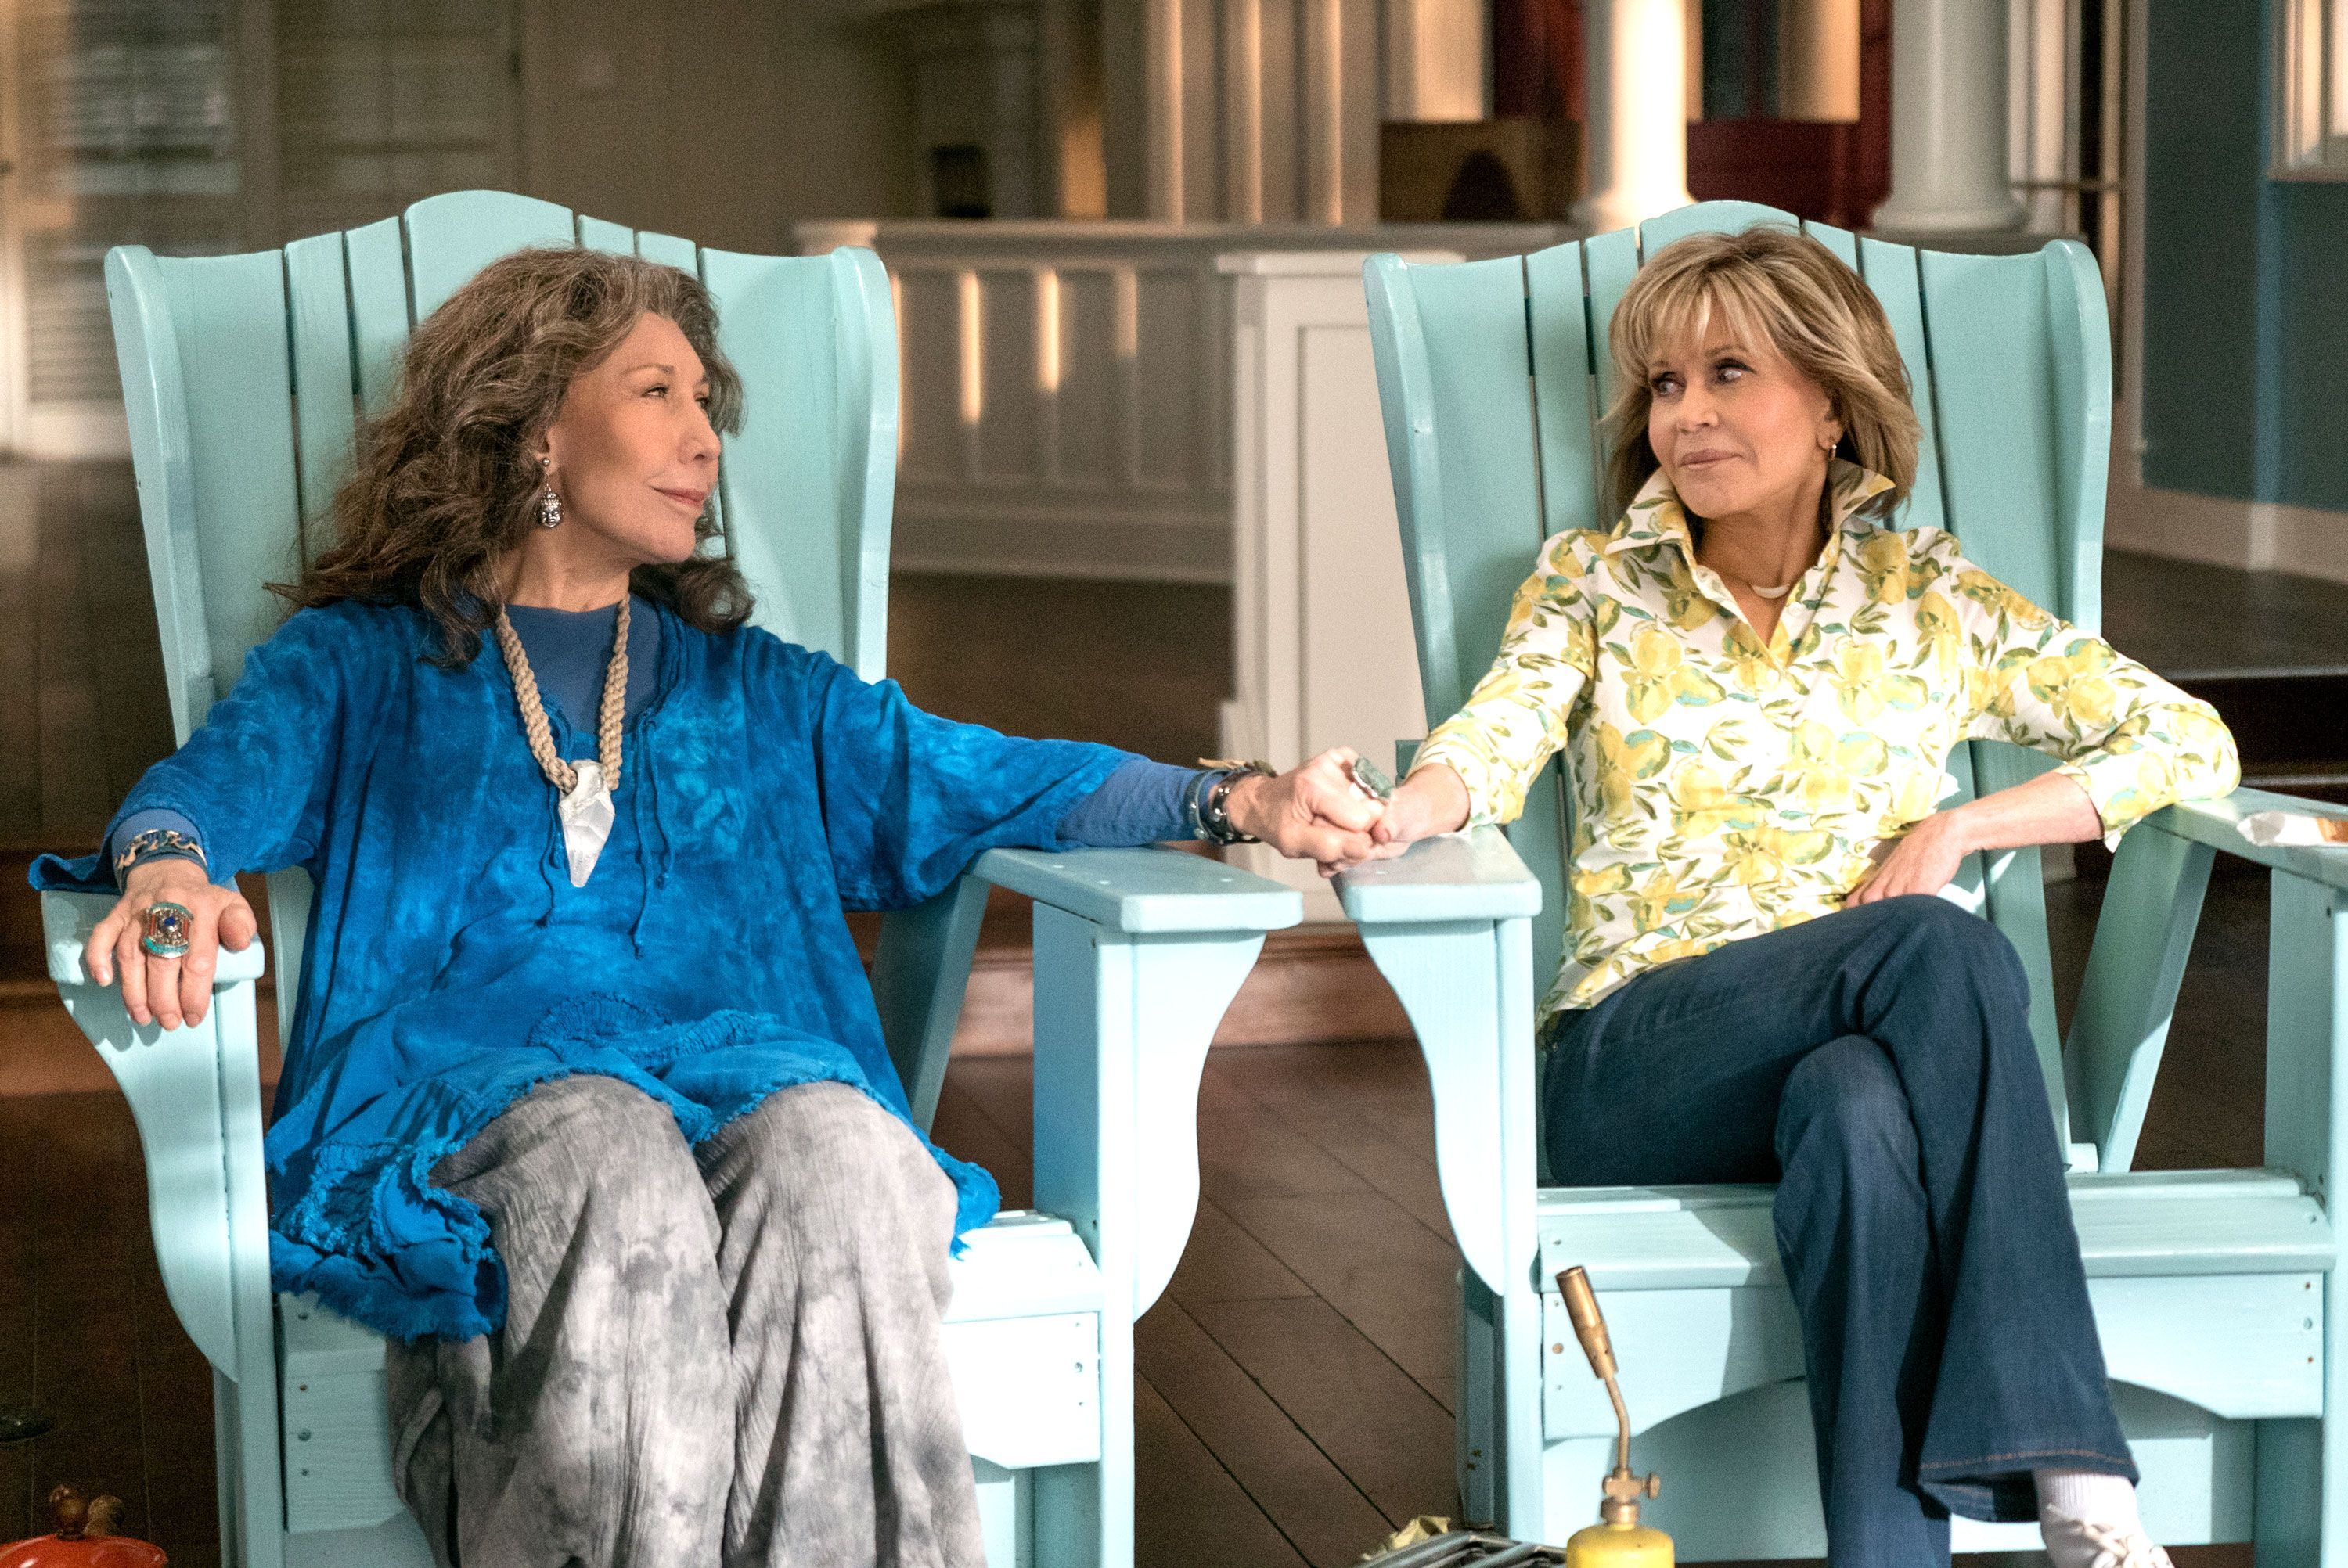 Netflix's longest-running original series Grace and Frankie to end after season 7